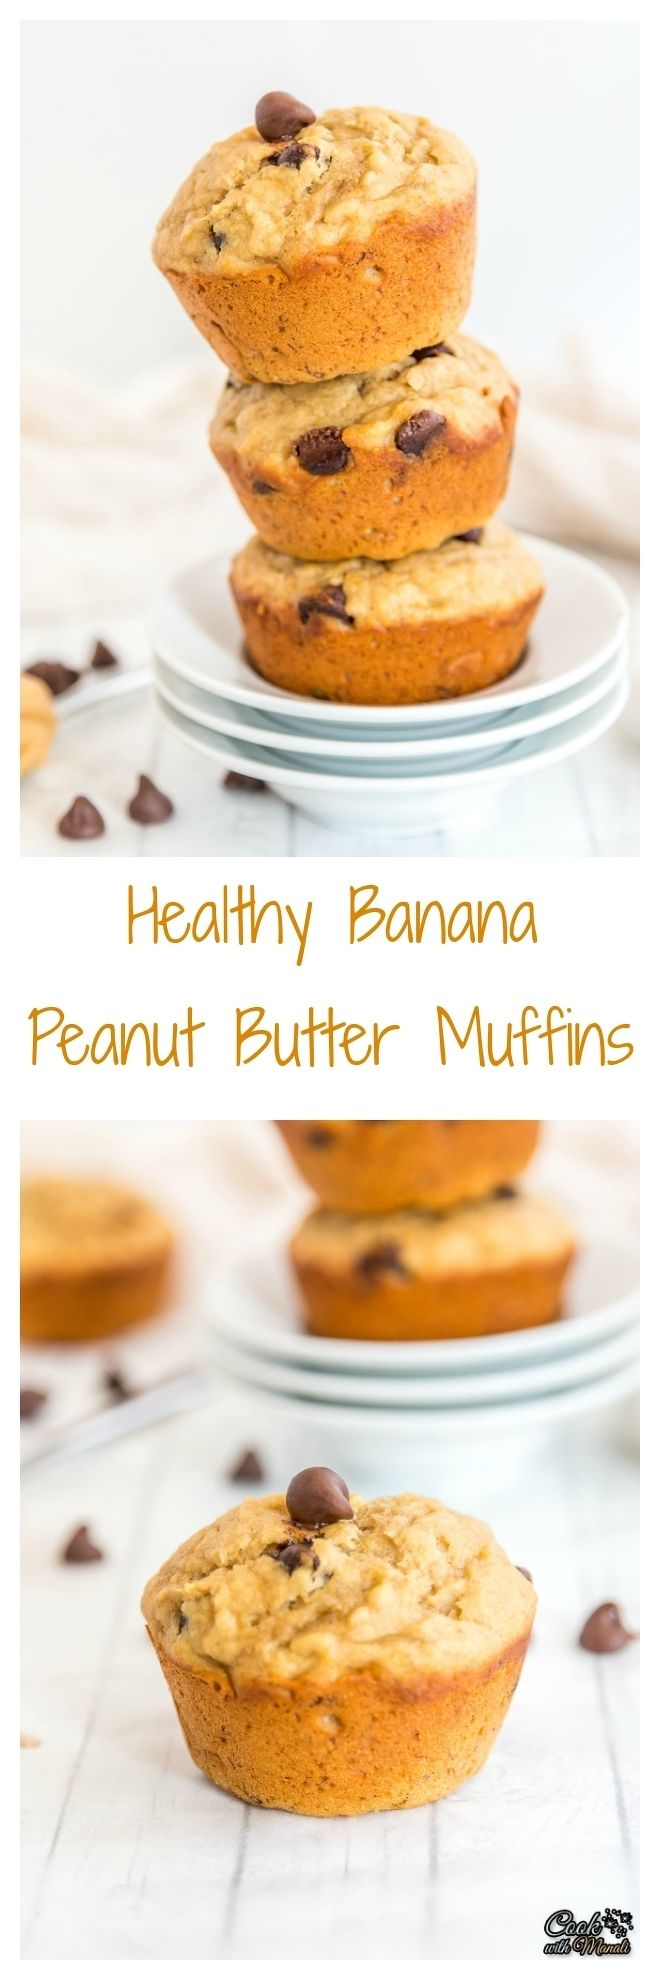 Healthy-Banana-Peanut-Butter-Muffins Collage-nocwm